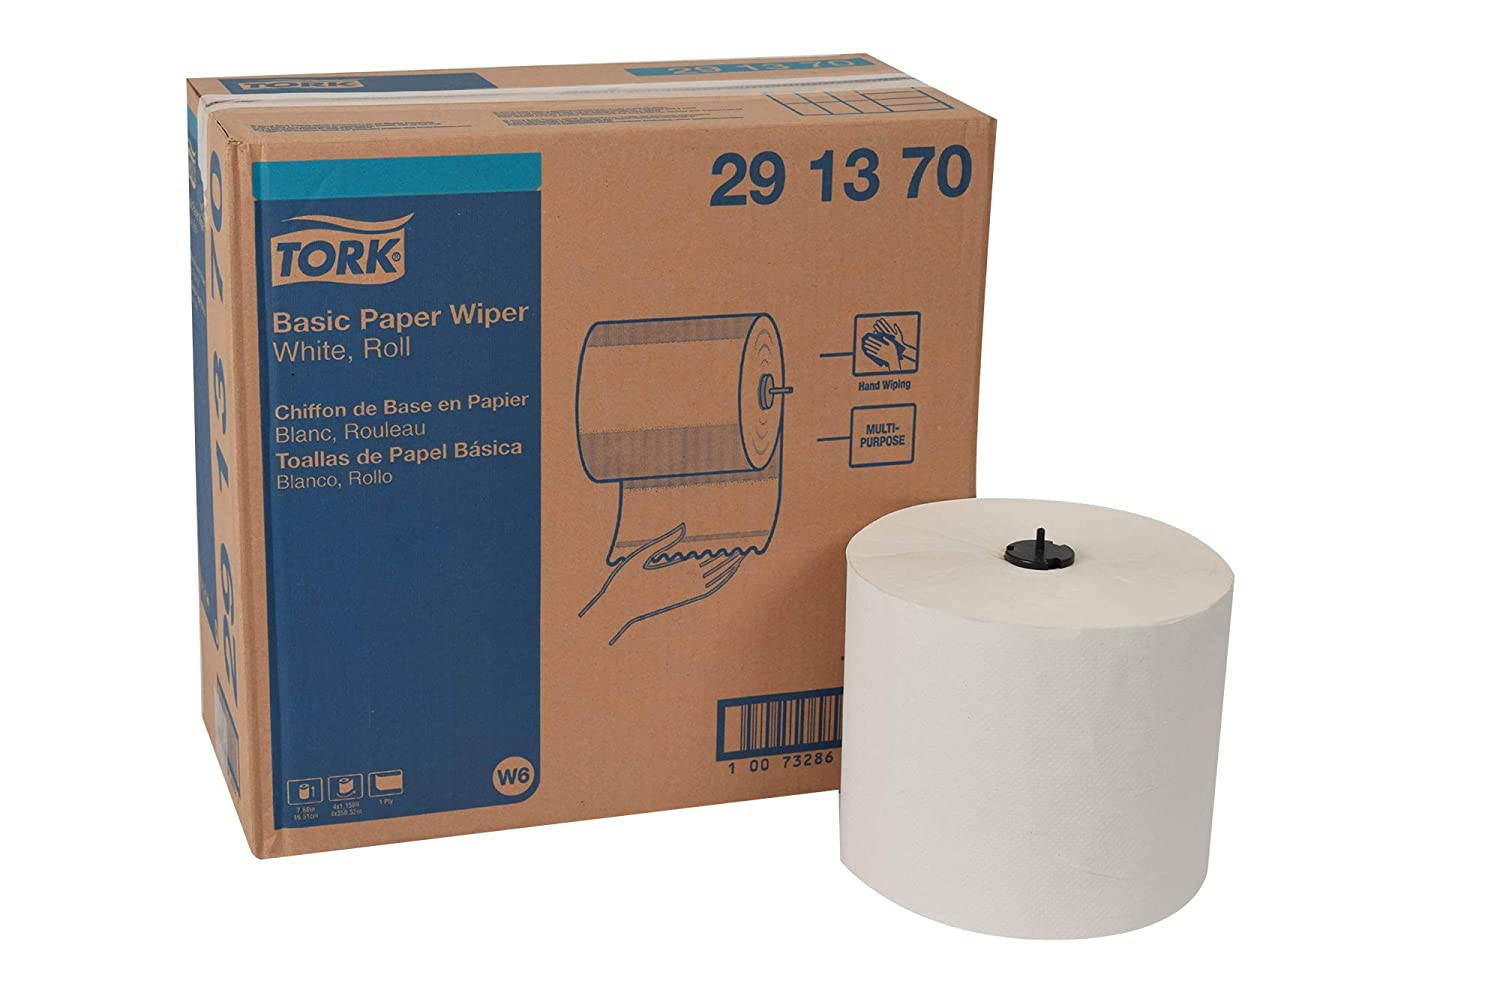 Tork 291370 Basic Paper Wiper, Roll Towel, 1-Ply, 7.68